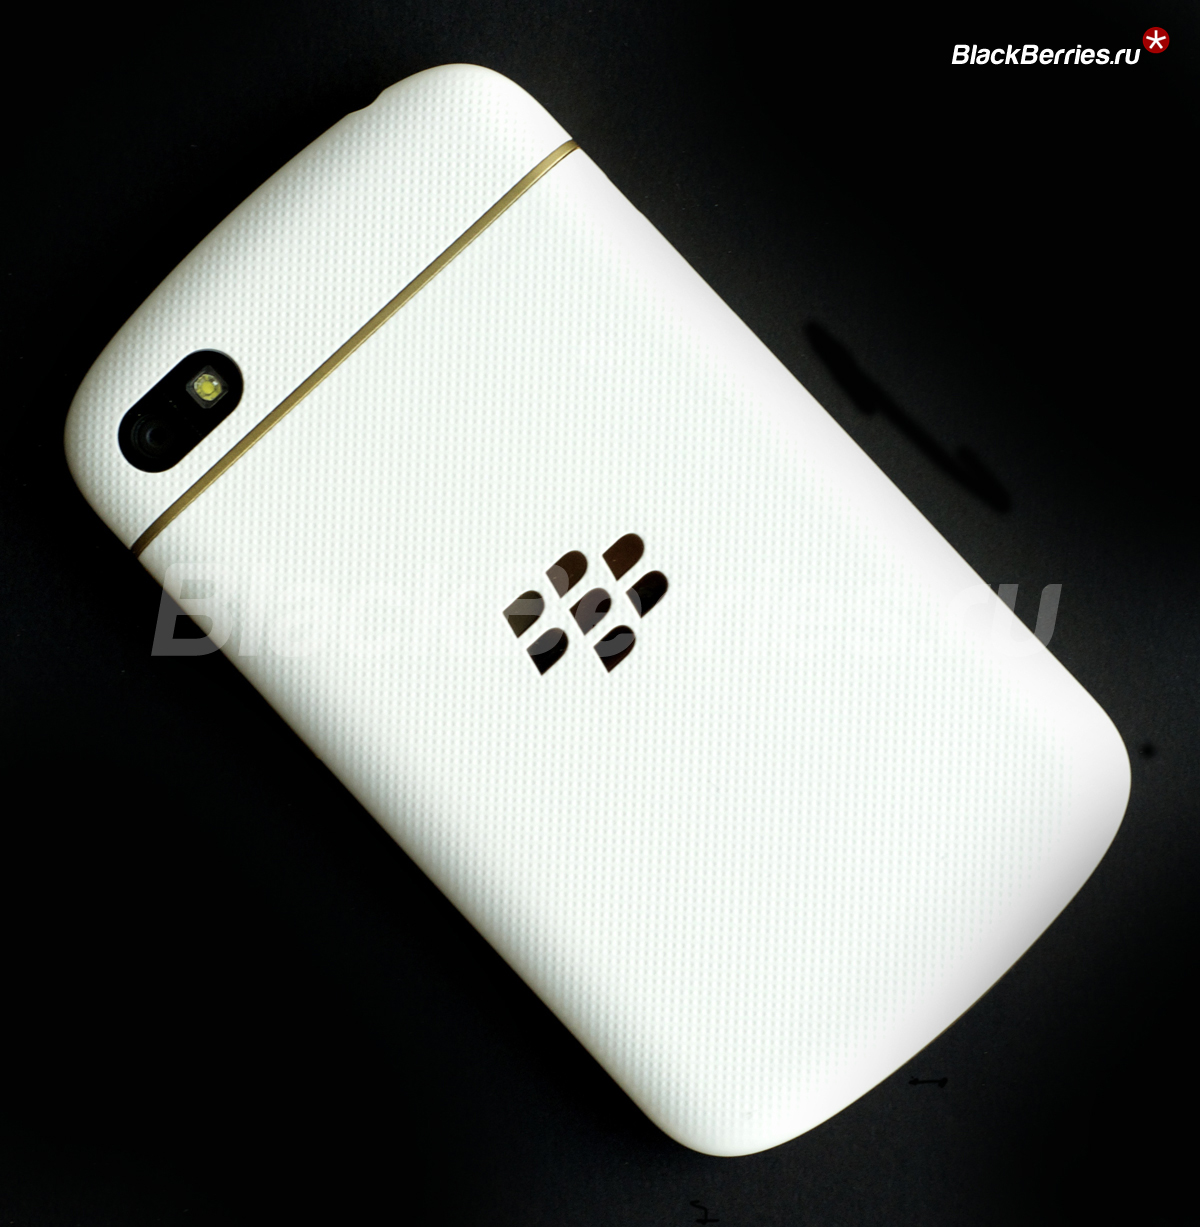 BlackBerry-Q10-Special-Edition-99